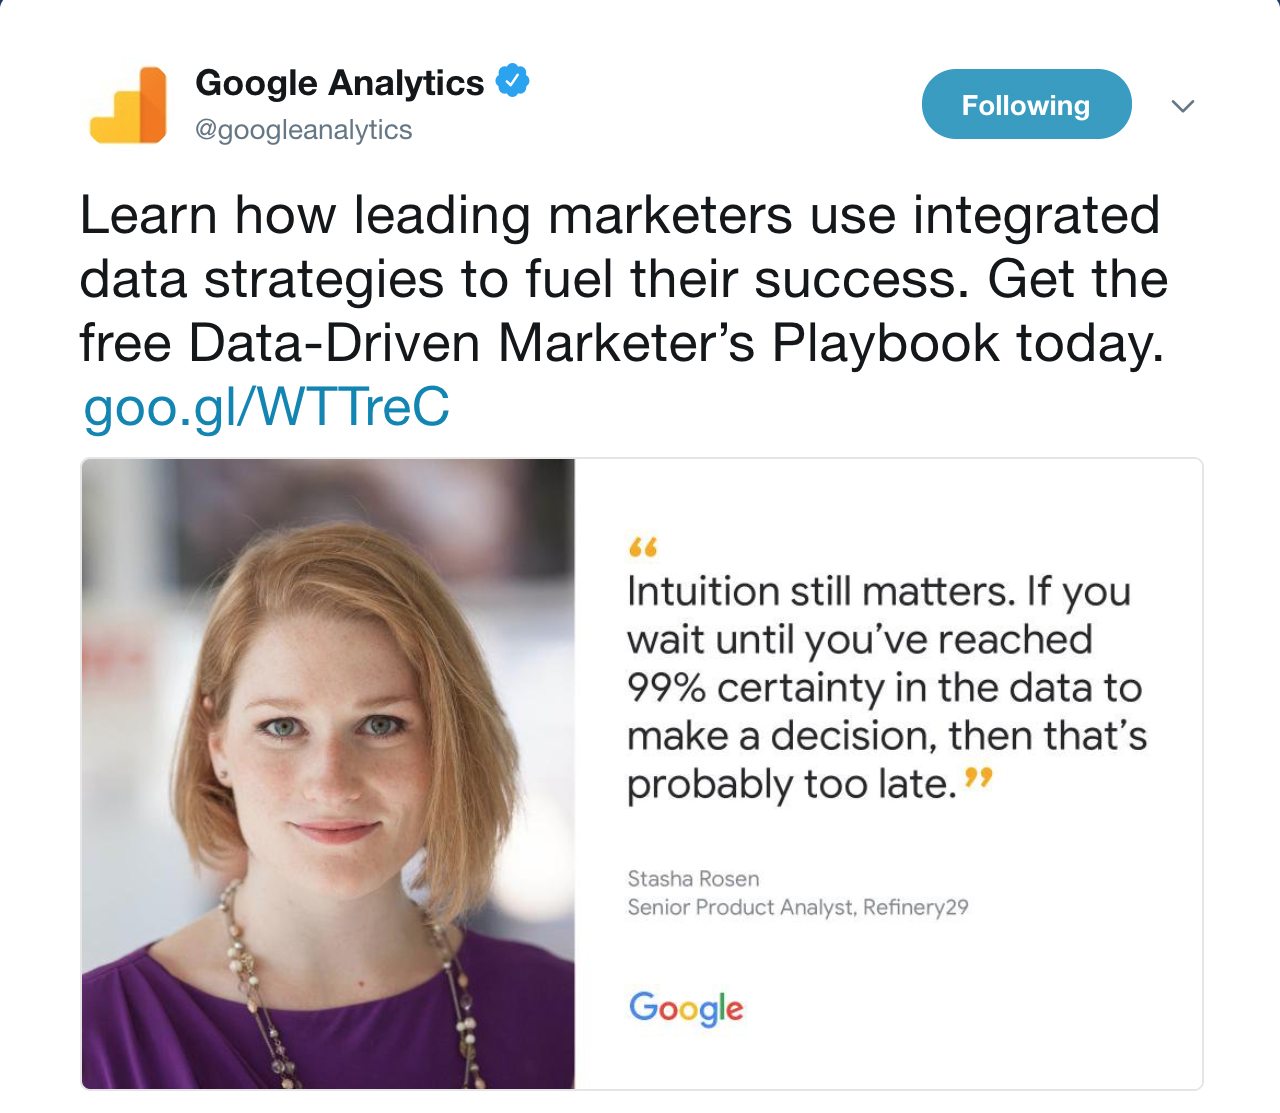 google-analytics-tweet-1.jpg